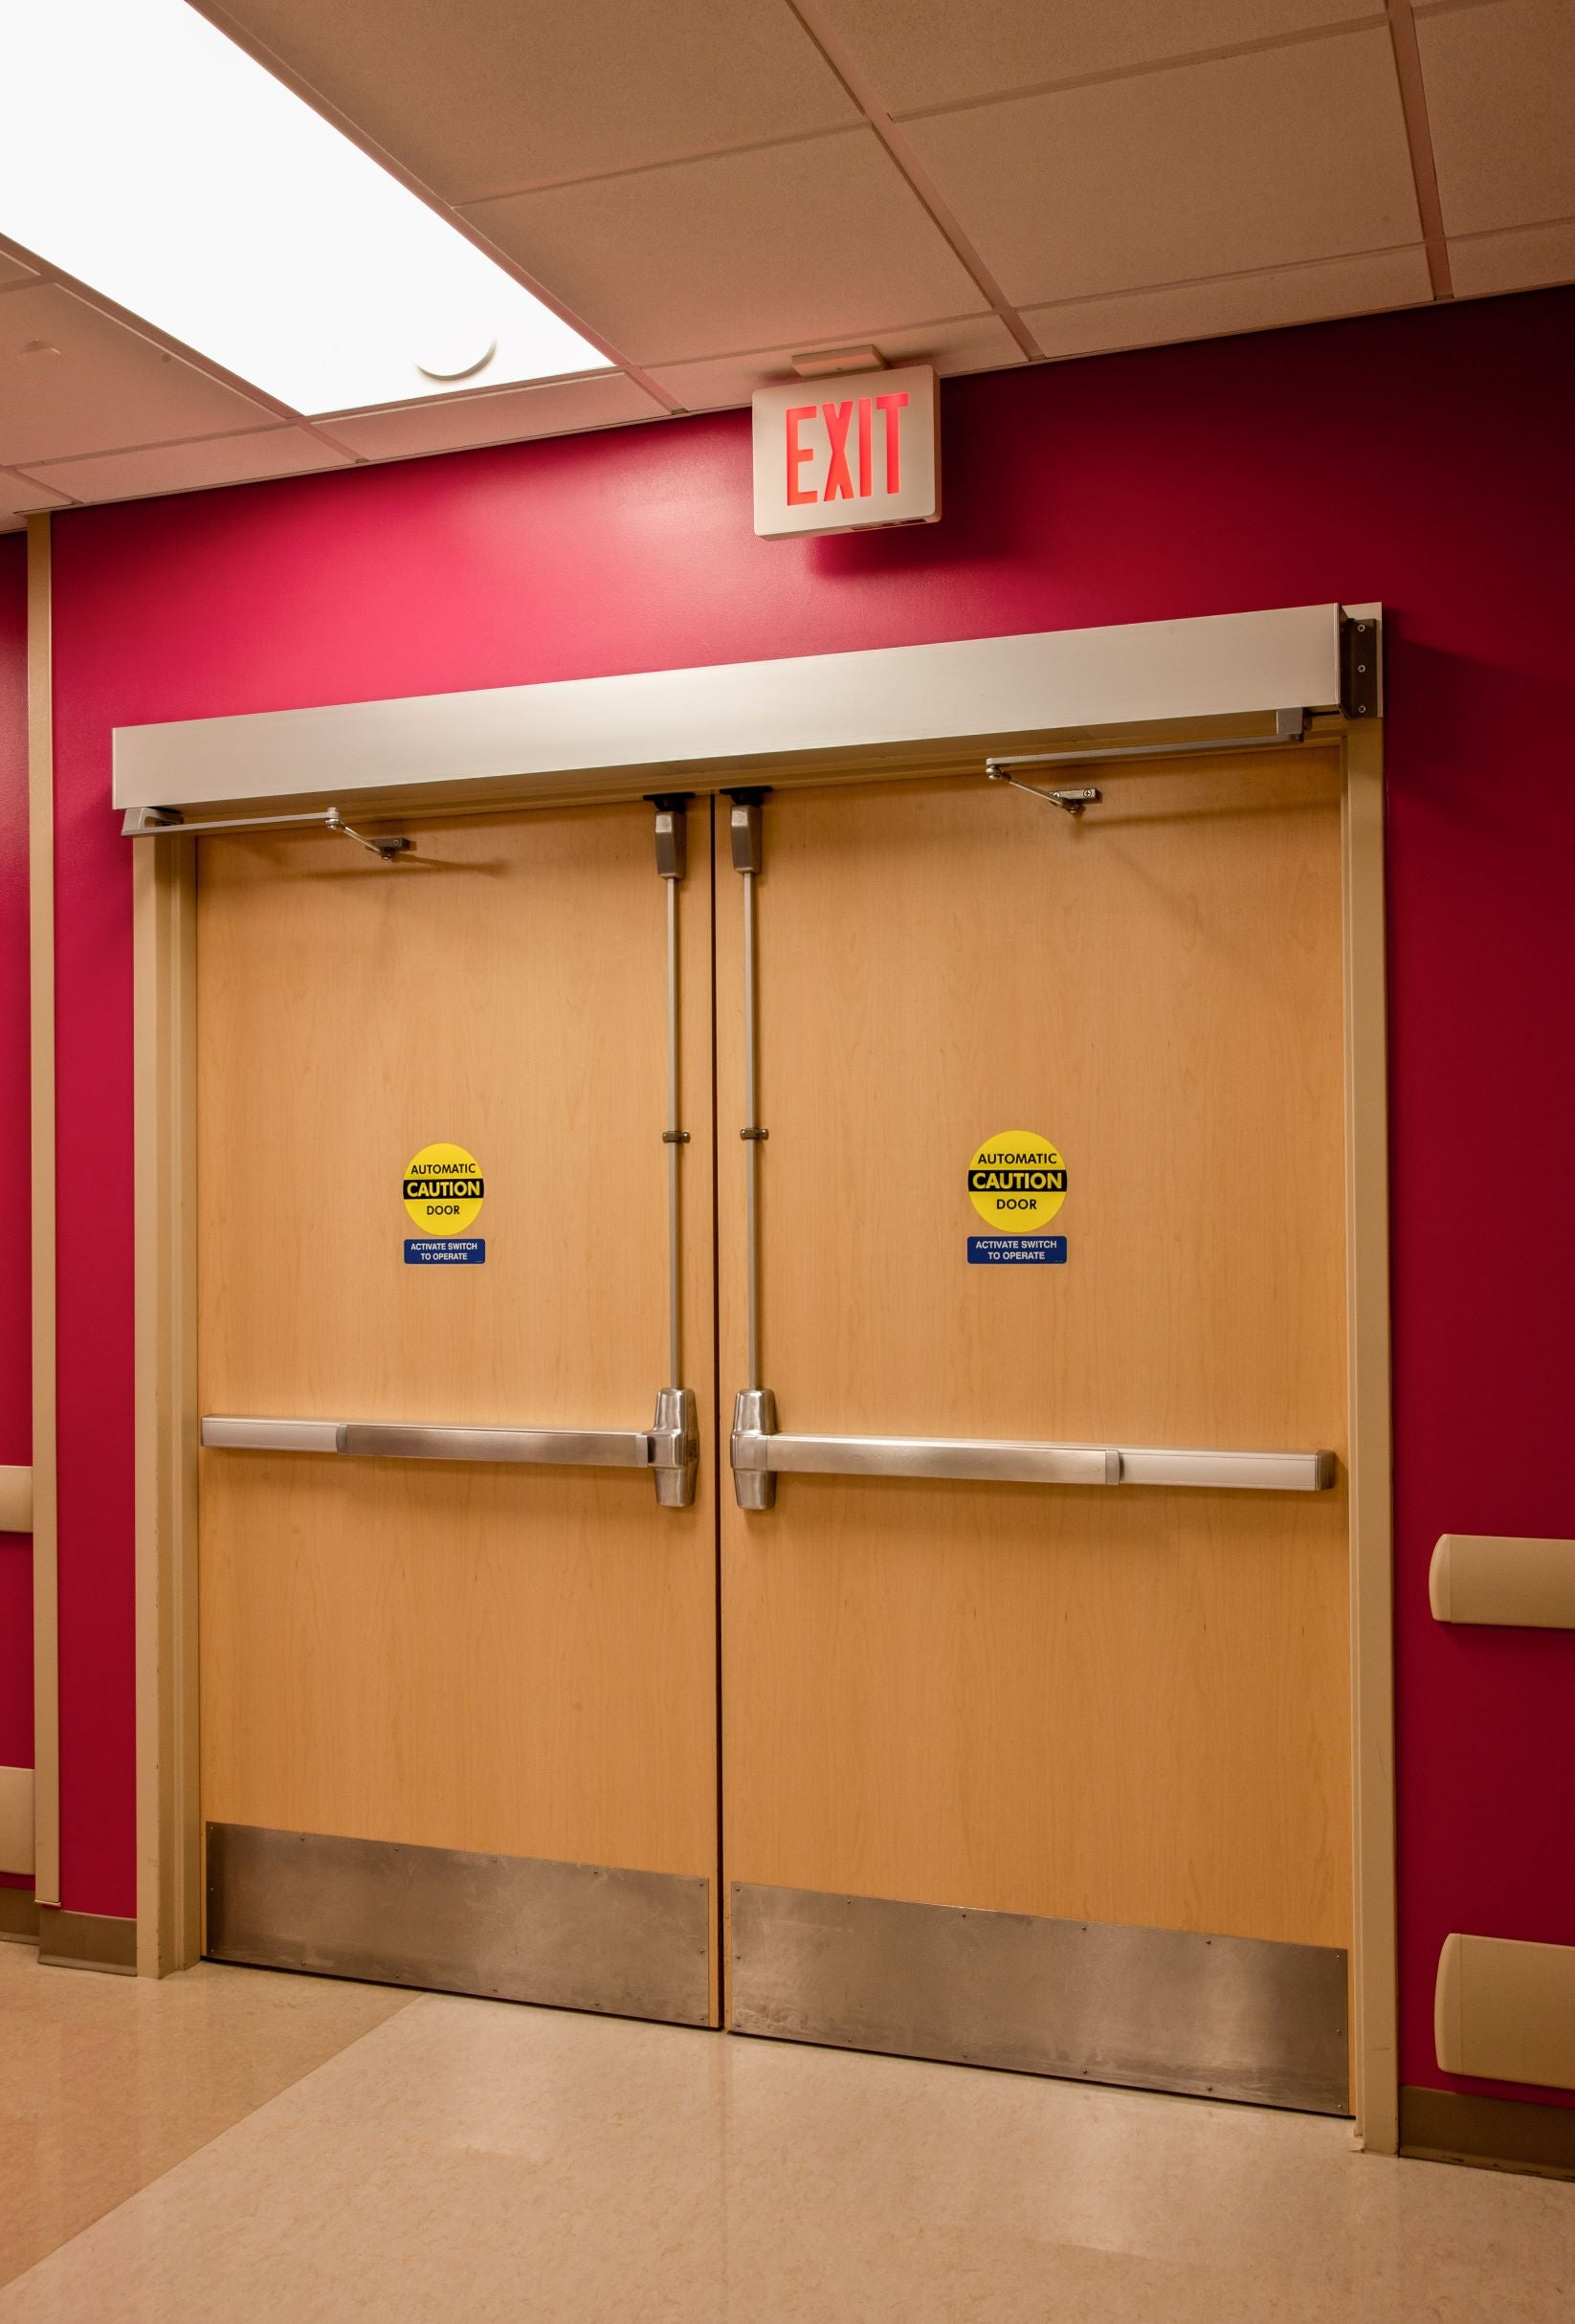 Demo photo of a set of ADA compliant automatic double doors